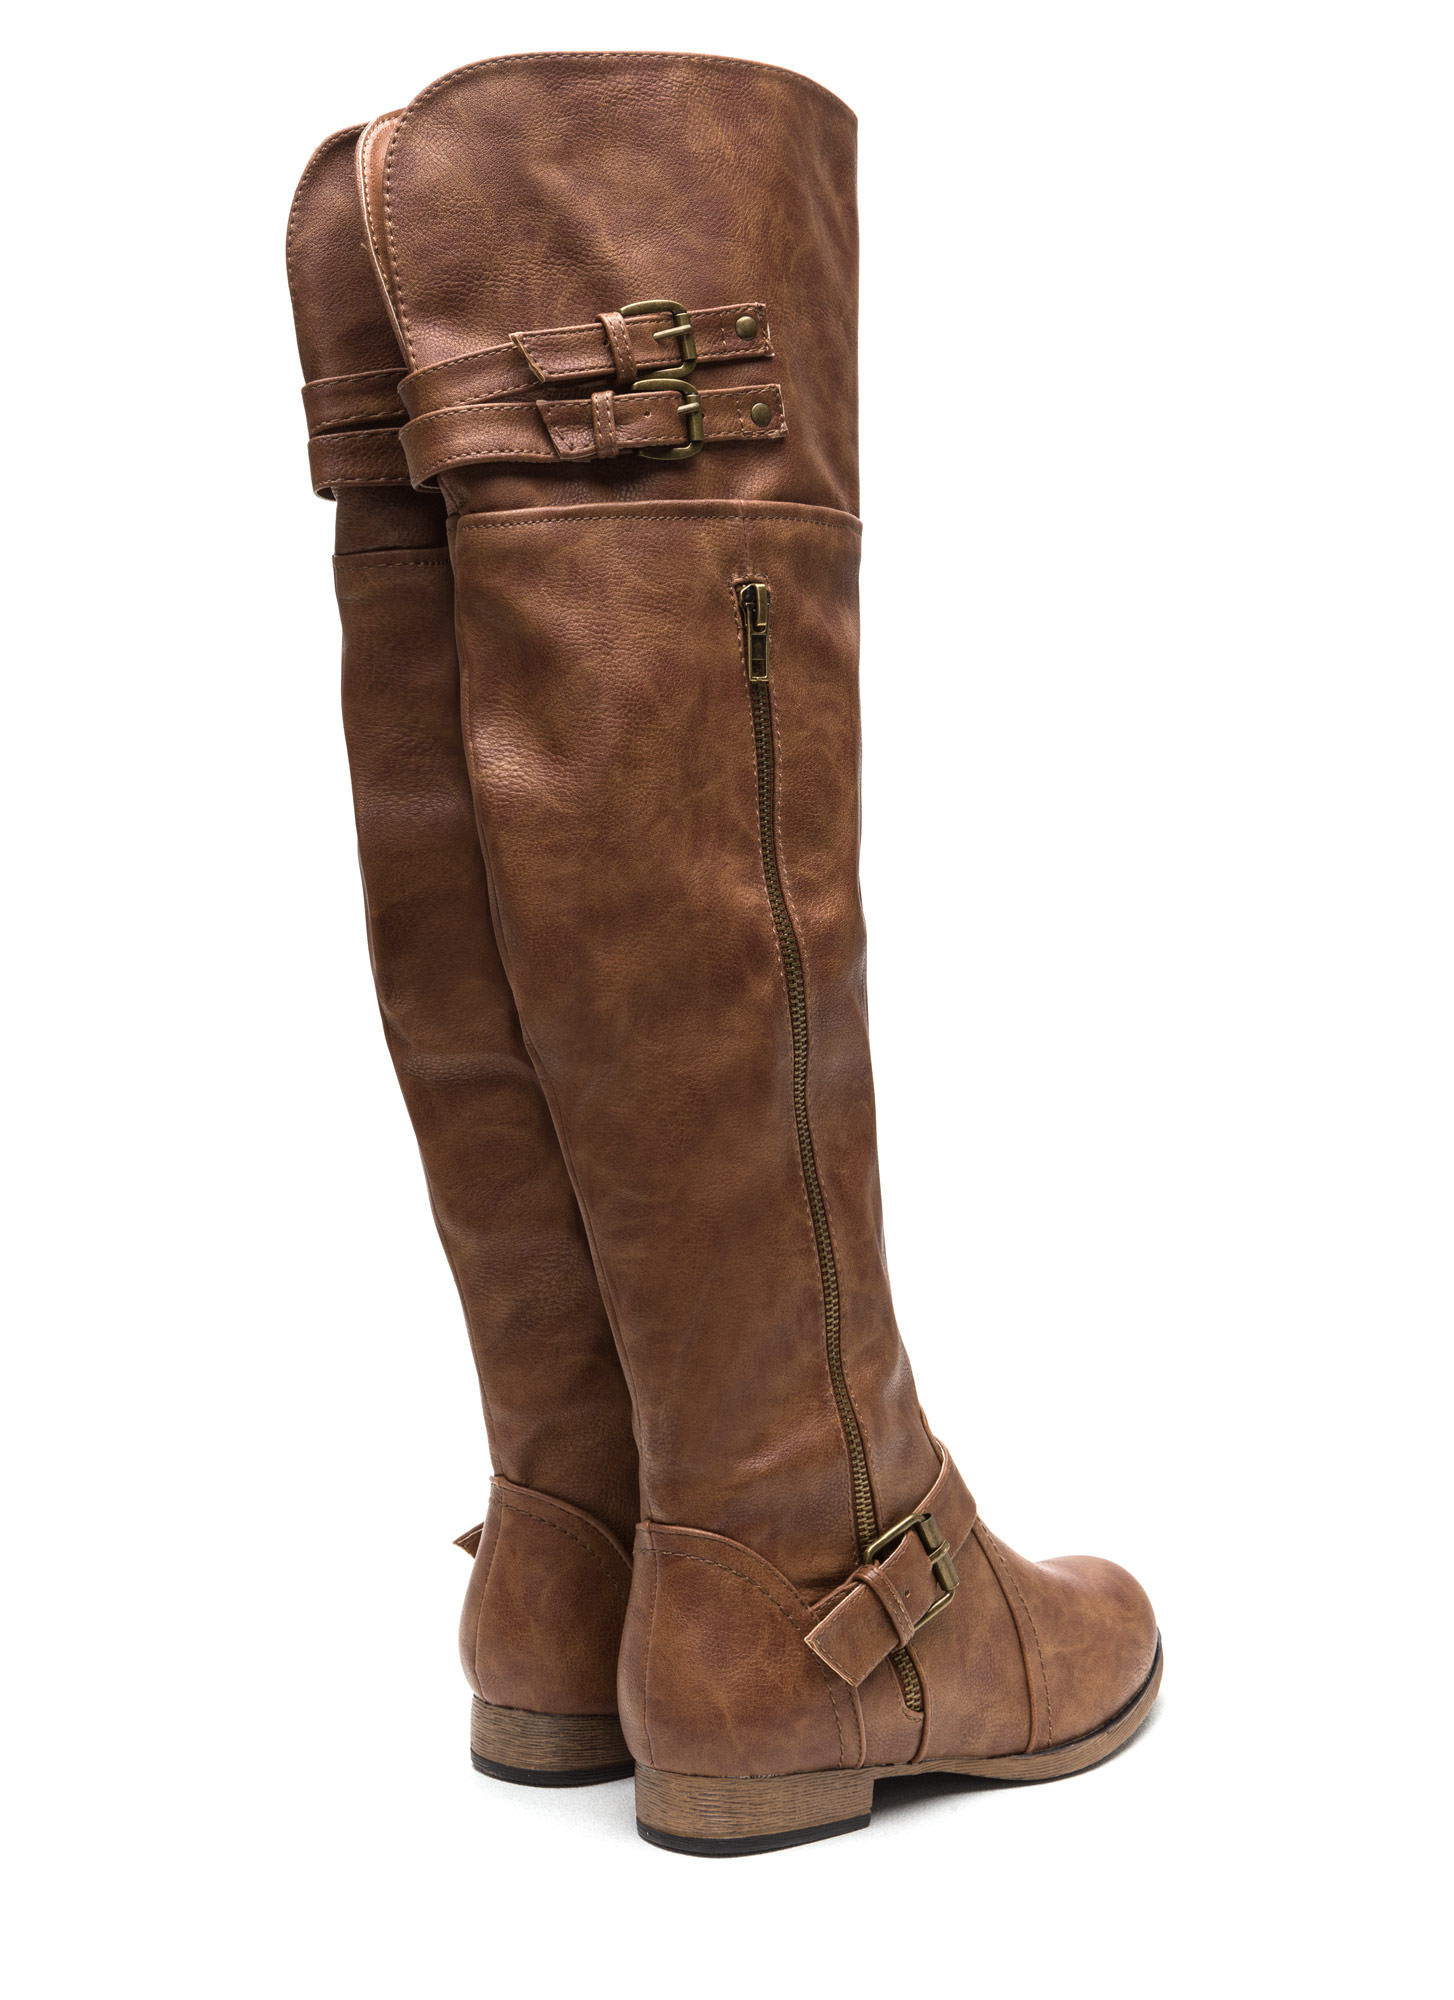 Walk Tall Buckled Boots COGNAC